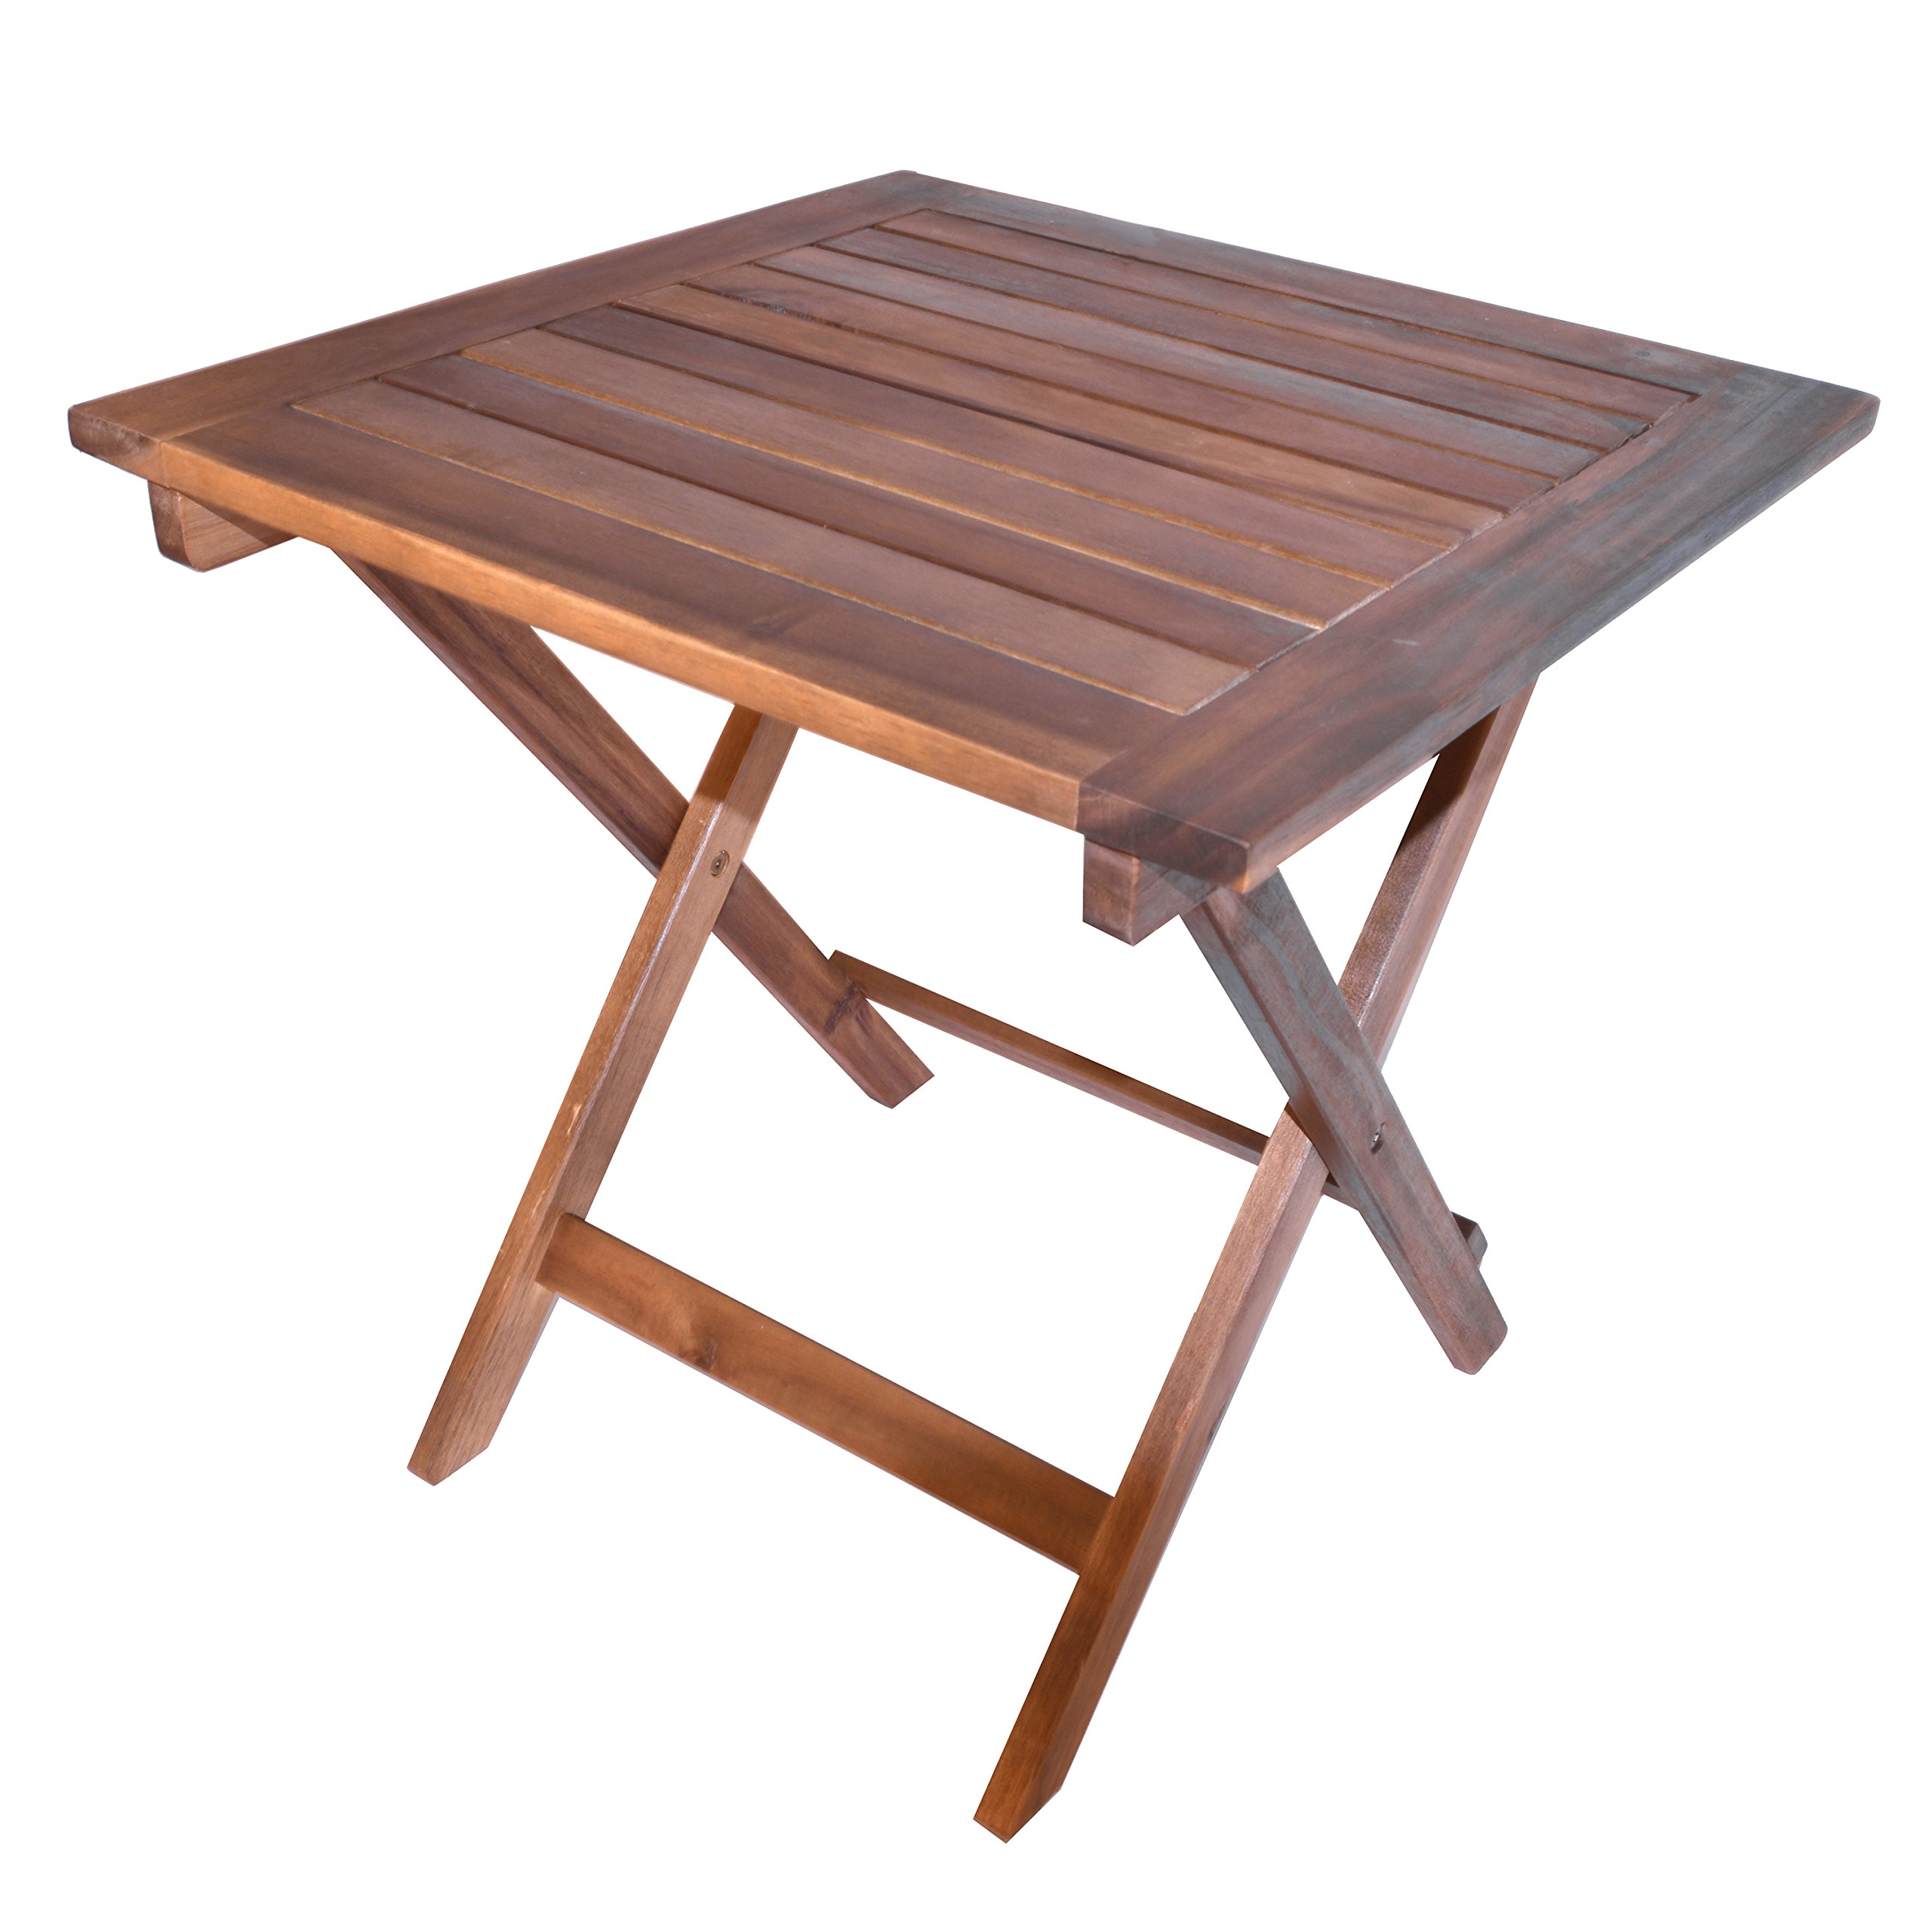 Décor Therapy FR1875 Outdoor Dining Table, Size 19.7w 19.7d 19.7h, Brown